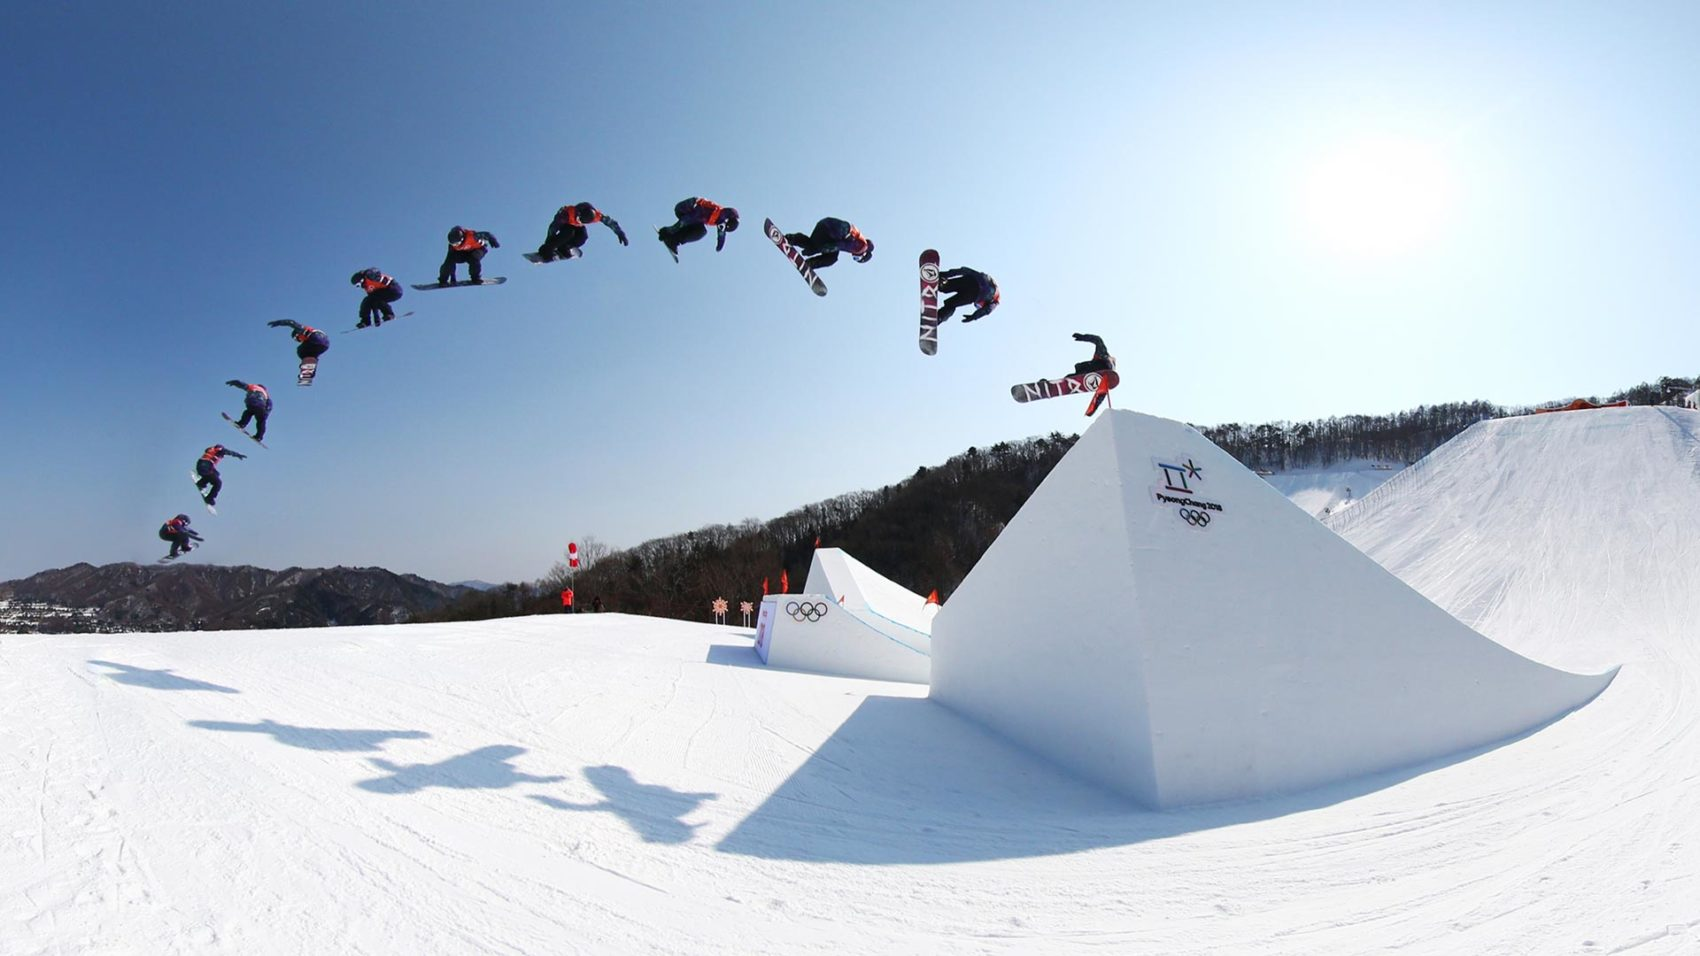 Slopestyle was introduced to the Olympics in 2014, snowboarding